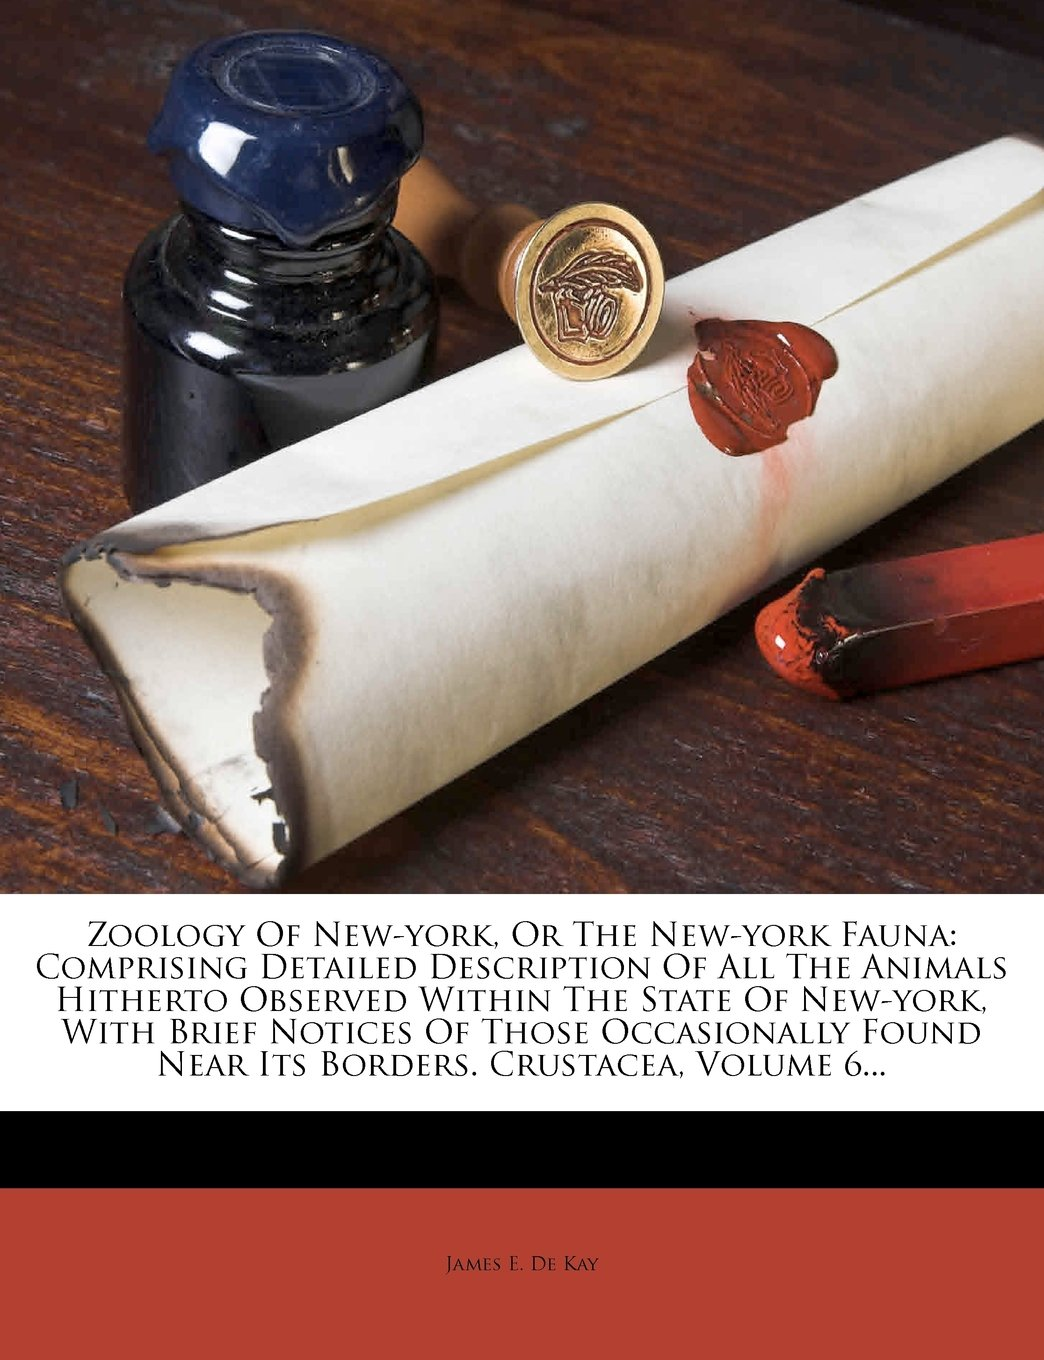 Zoology Of New-york, Or The New-york Fauna: Comprising Detailed Description Of All The Animals Hitherto Observed Within The State Of New-york, With ... Near Its Borders. Crustacea, Volume 6... pdf epub